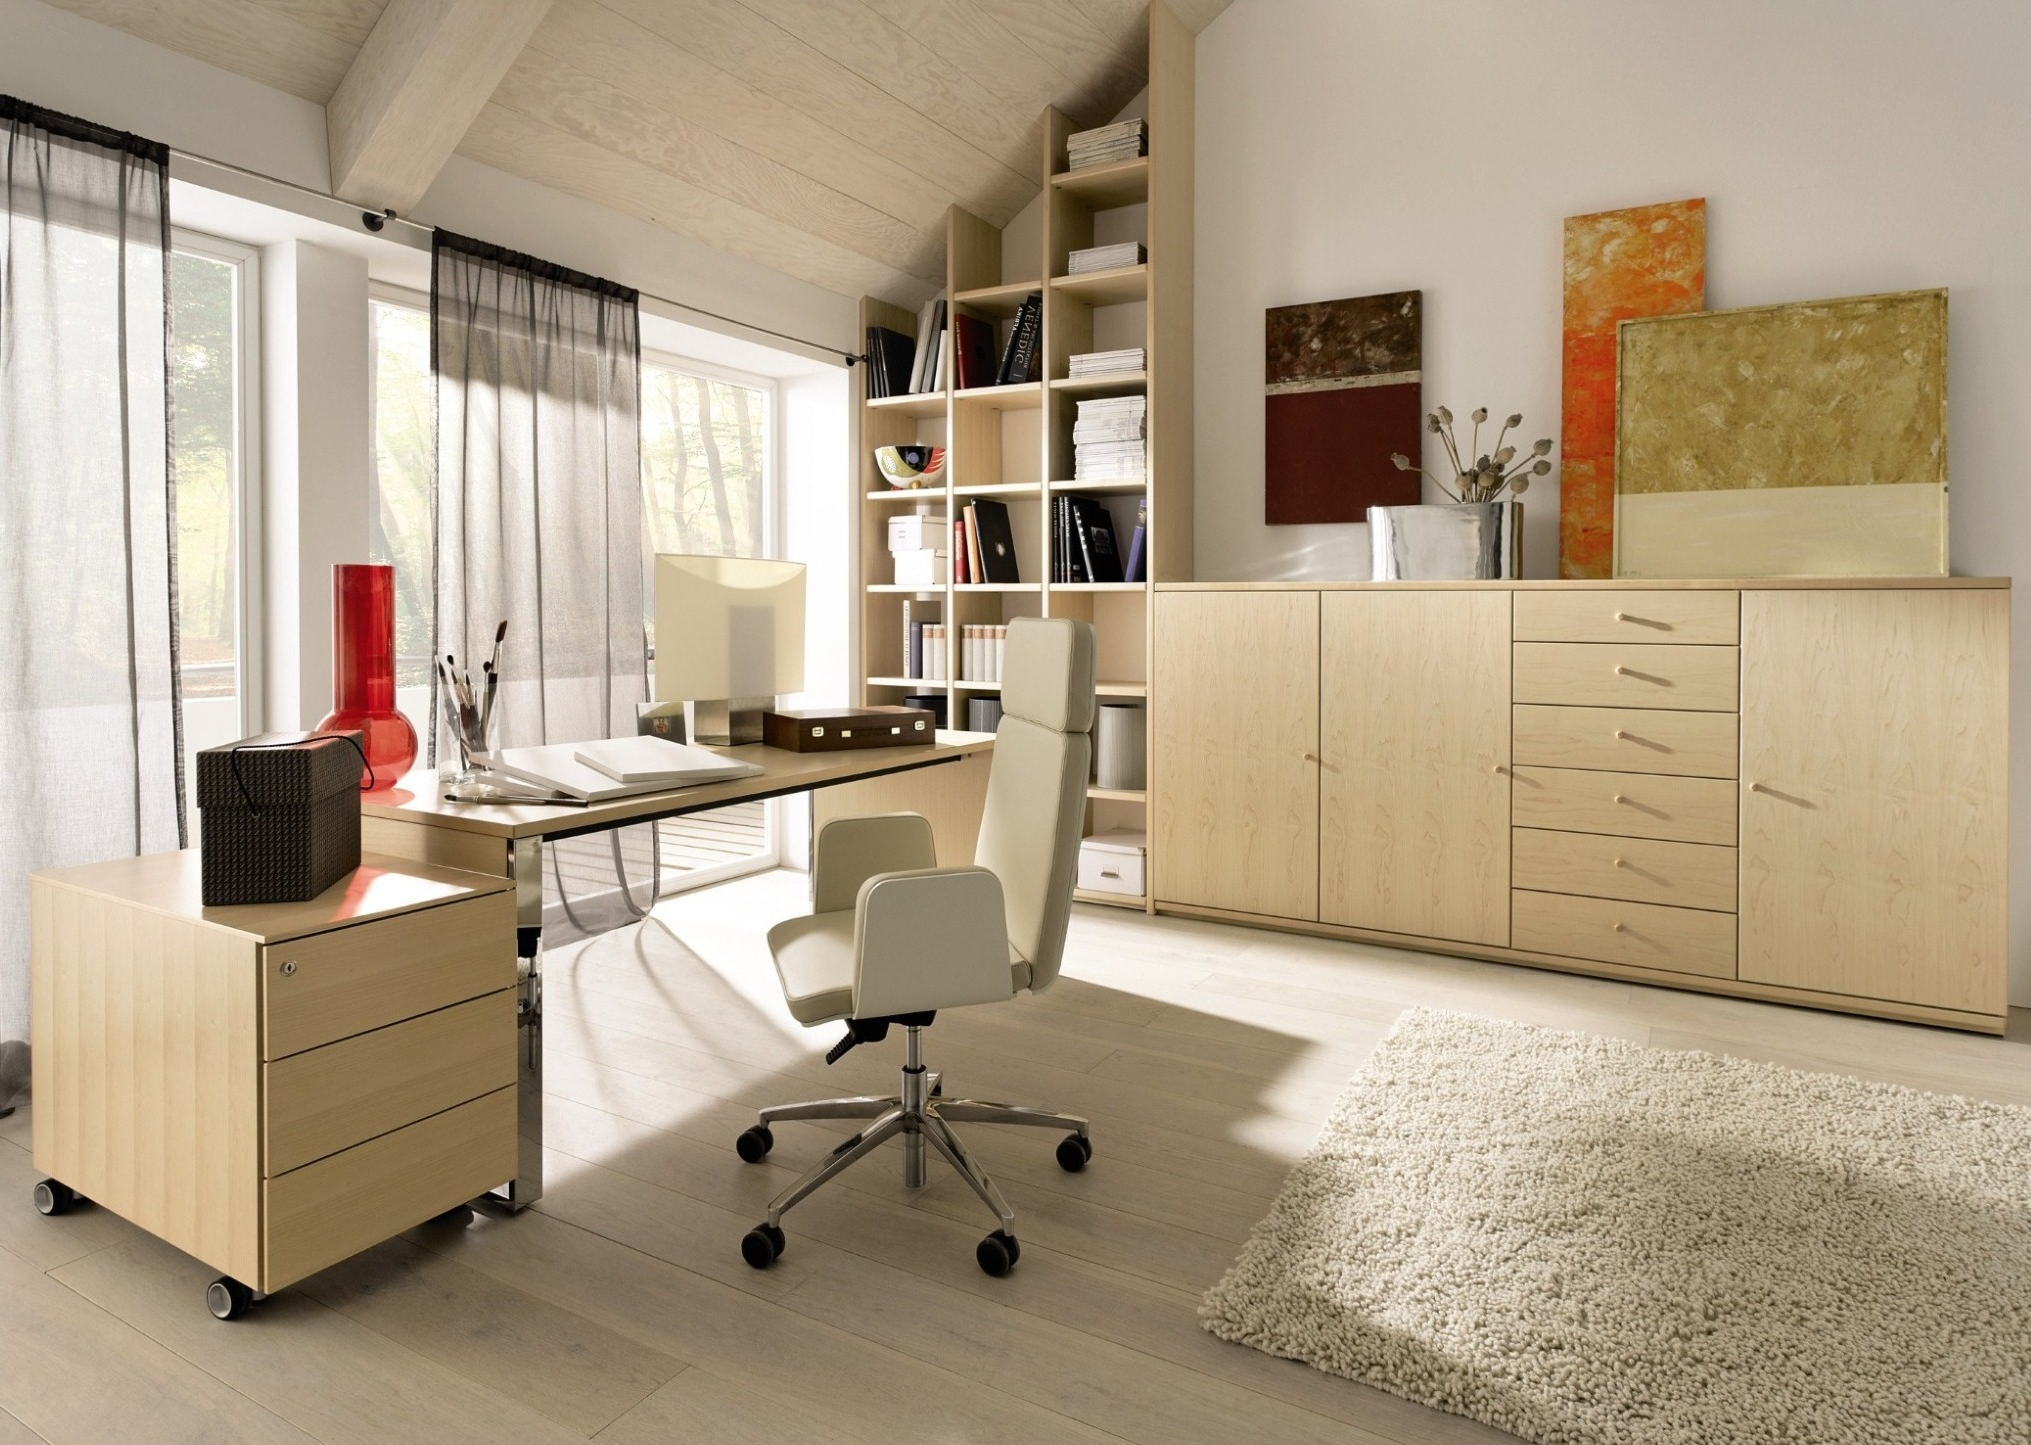 Impressive Office Interior Design Focus On Cozy Swivel Chair And Corner Wall Bookshelf Idea Feat Modern File Cabinets (View 6 of 30)